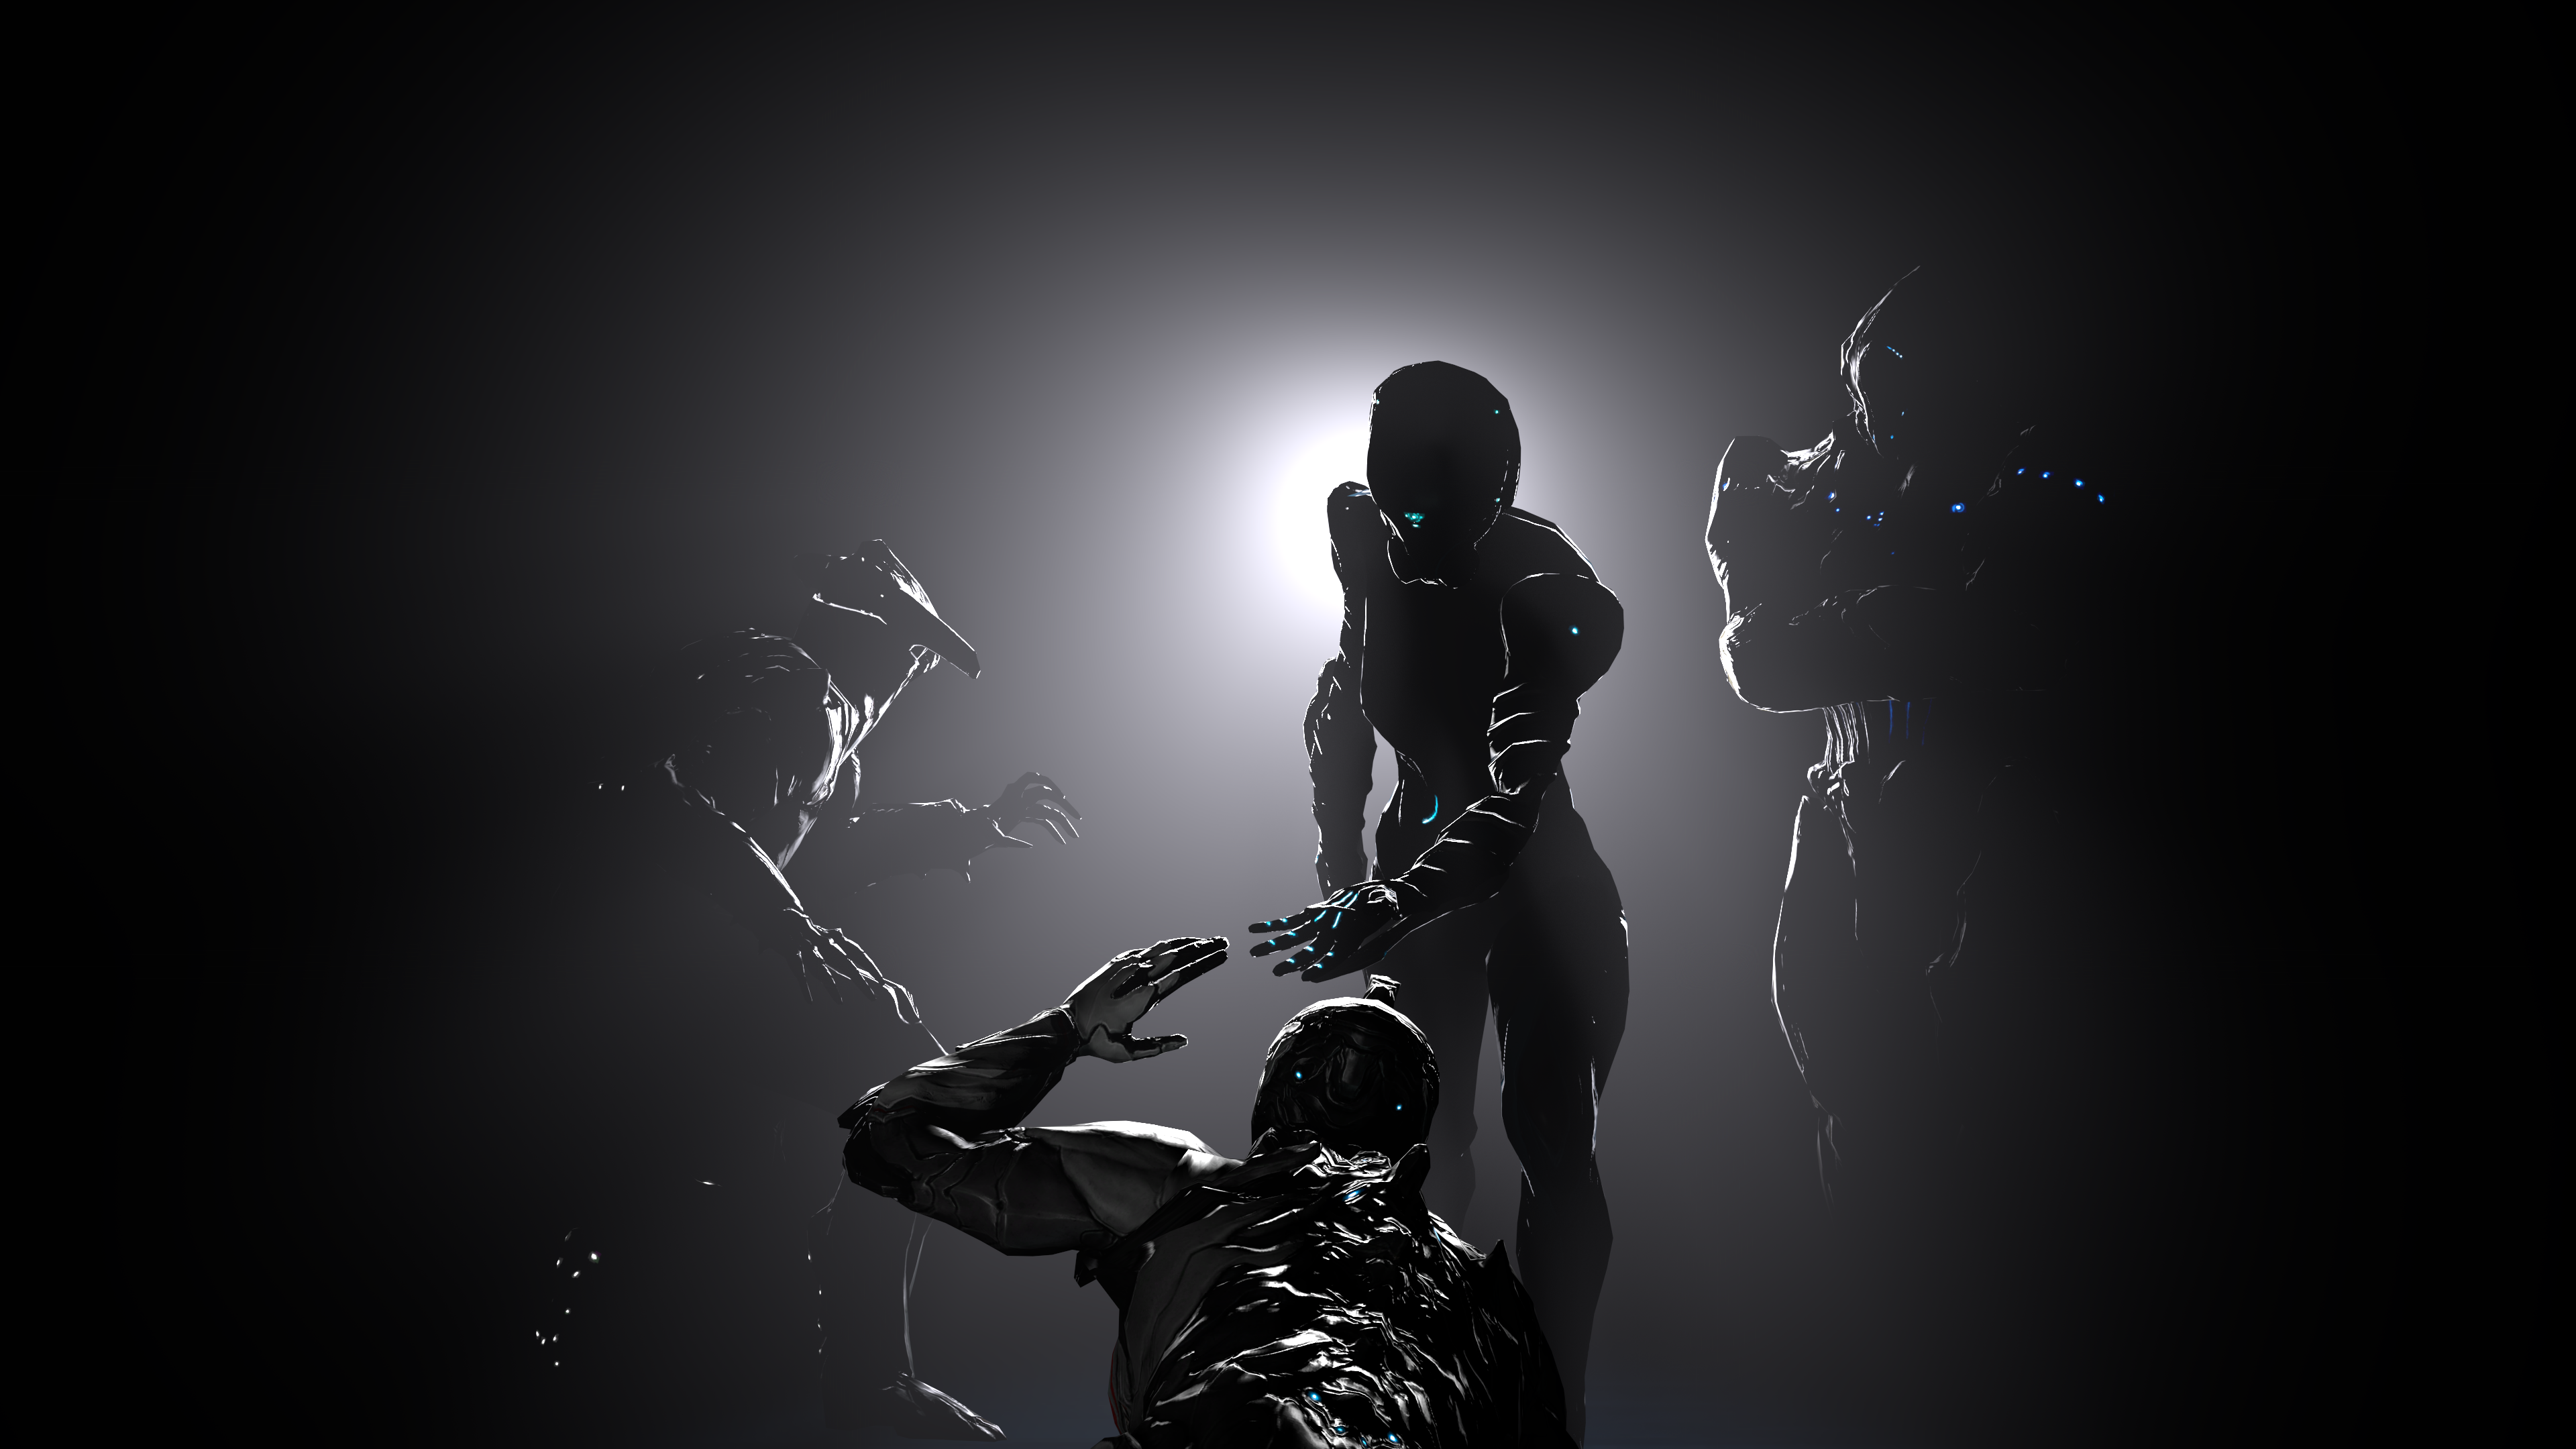 A-Tenno-is-Never-Alone-×-Warframe-wallpaper-wp5203686